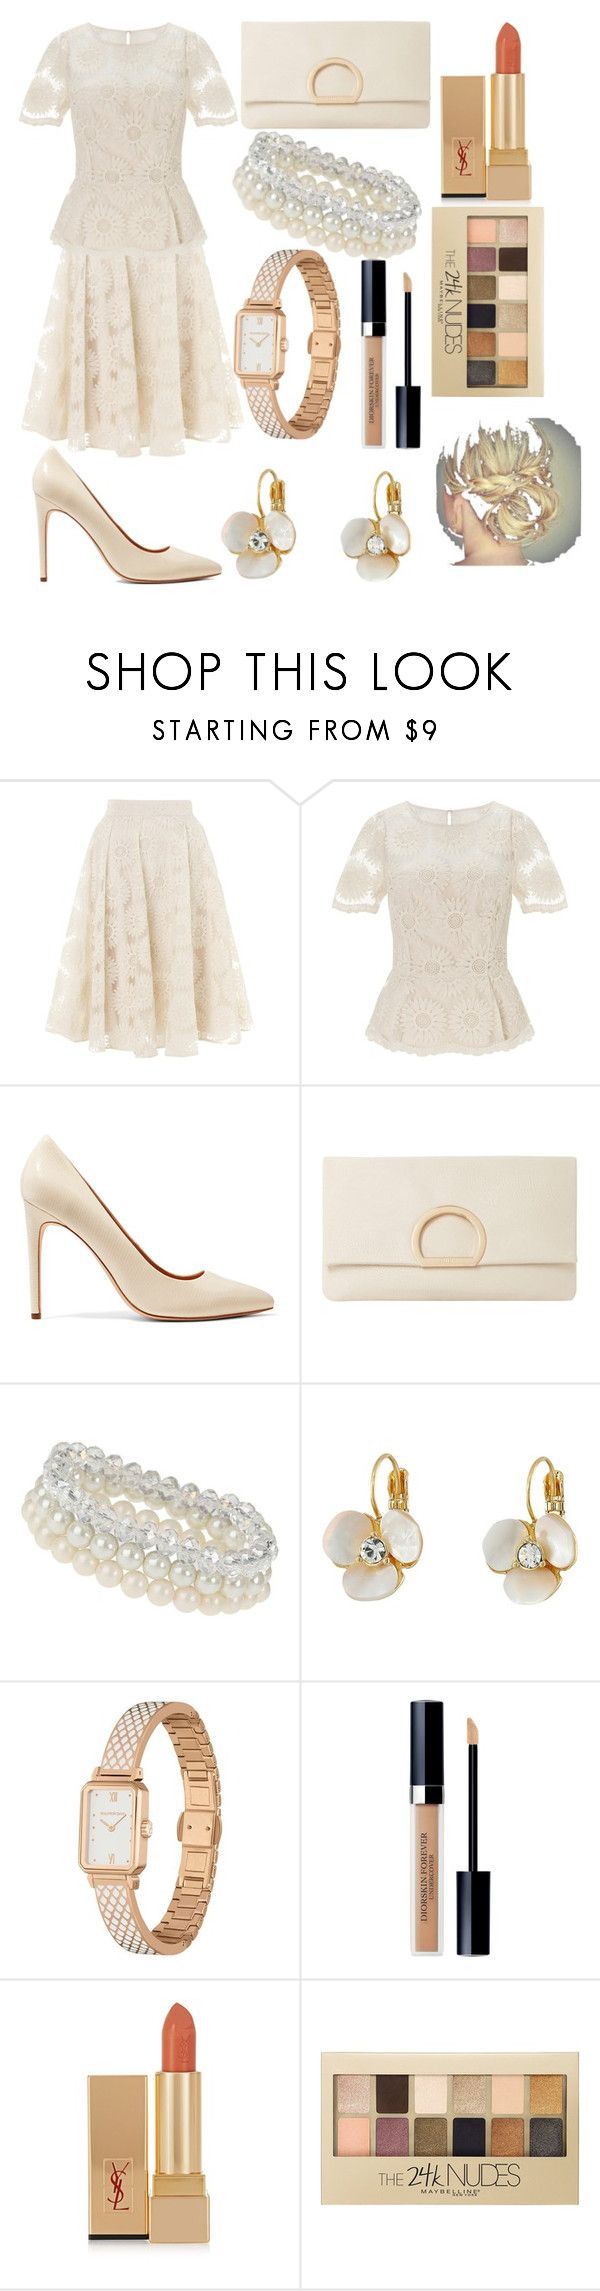 """Cream"" by soolalcalde ❤ liked on Polyvore featuring Somerset by Alice Temperley, Halston Heritage, Dune, Dorothy Perkins, Kate Spade, Halcyon Days, Christian Dior, Yves Saint Laurent and Maybelline"